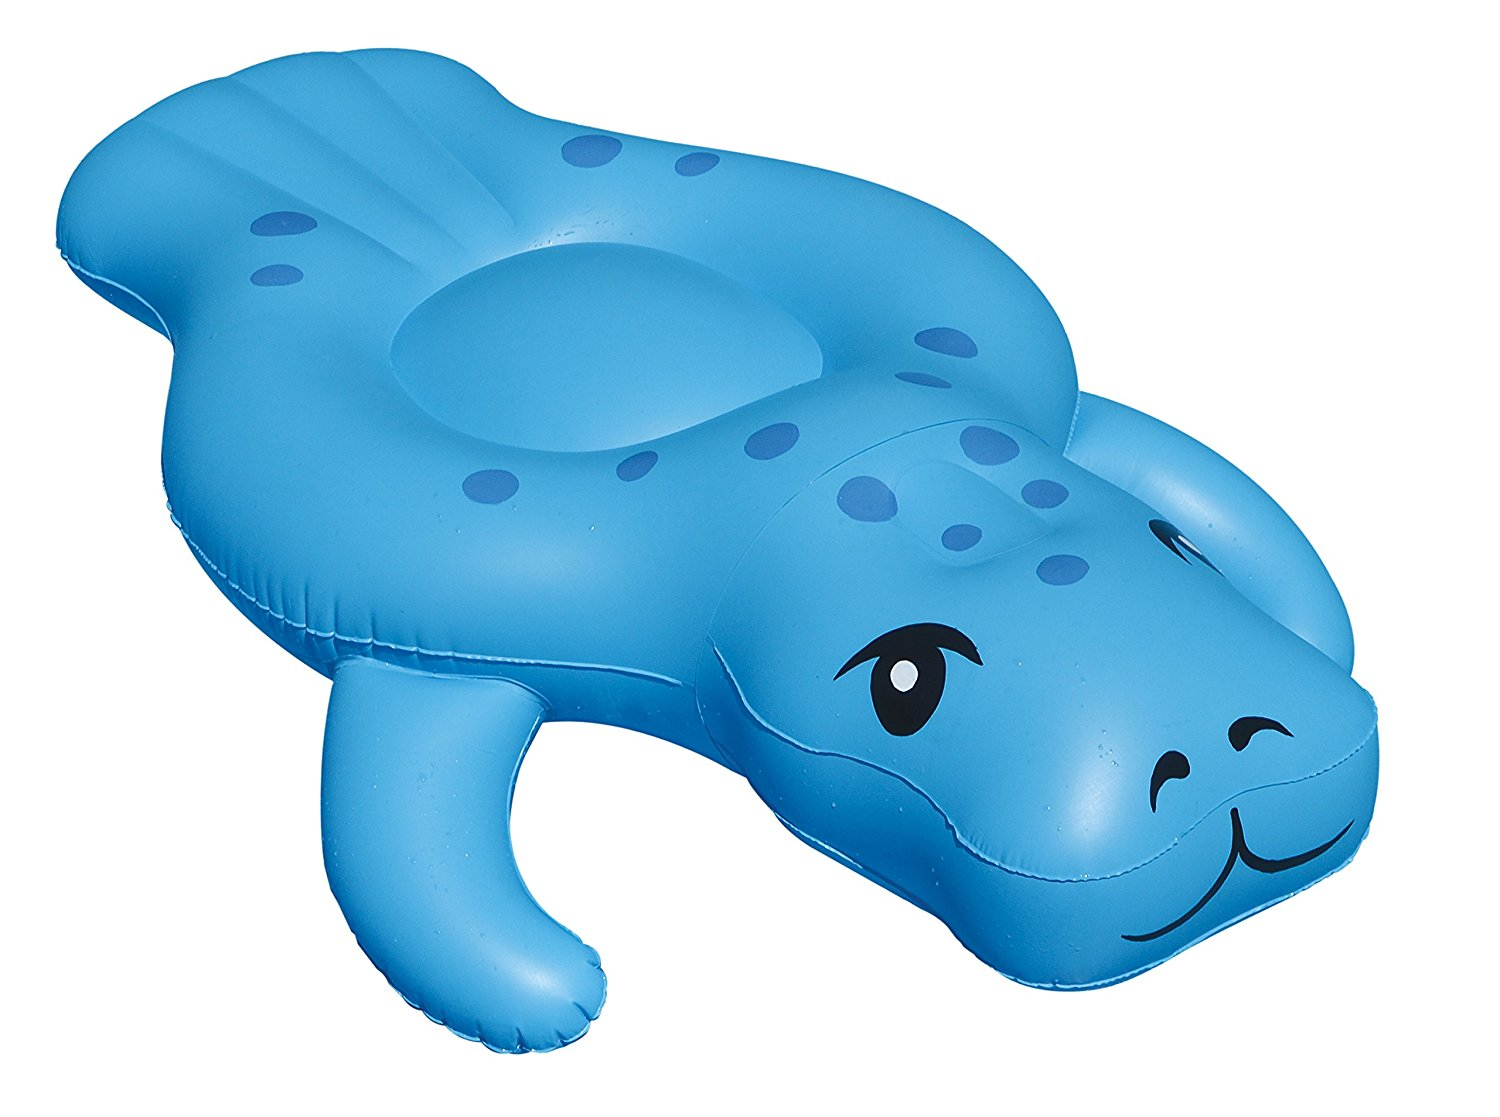 Pool Float Clipart | Free download best Pool Float Clipart on ...